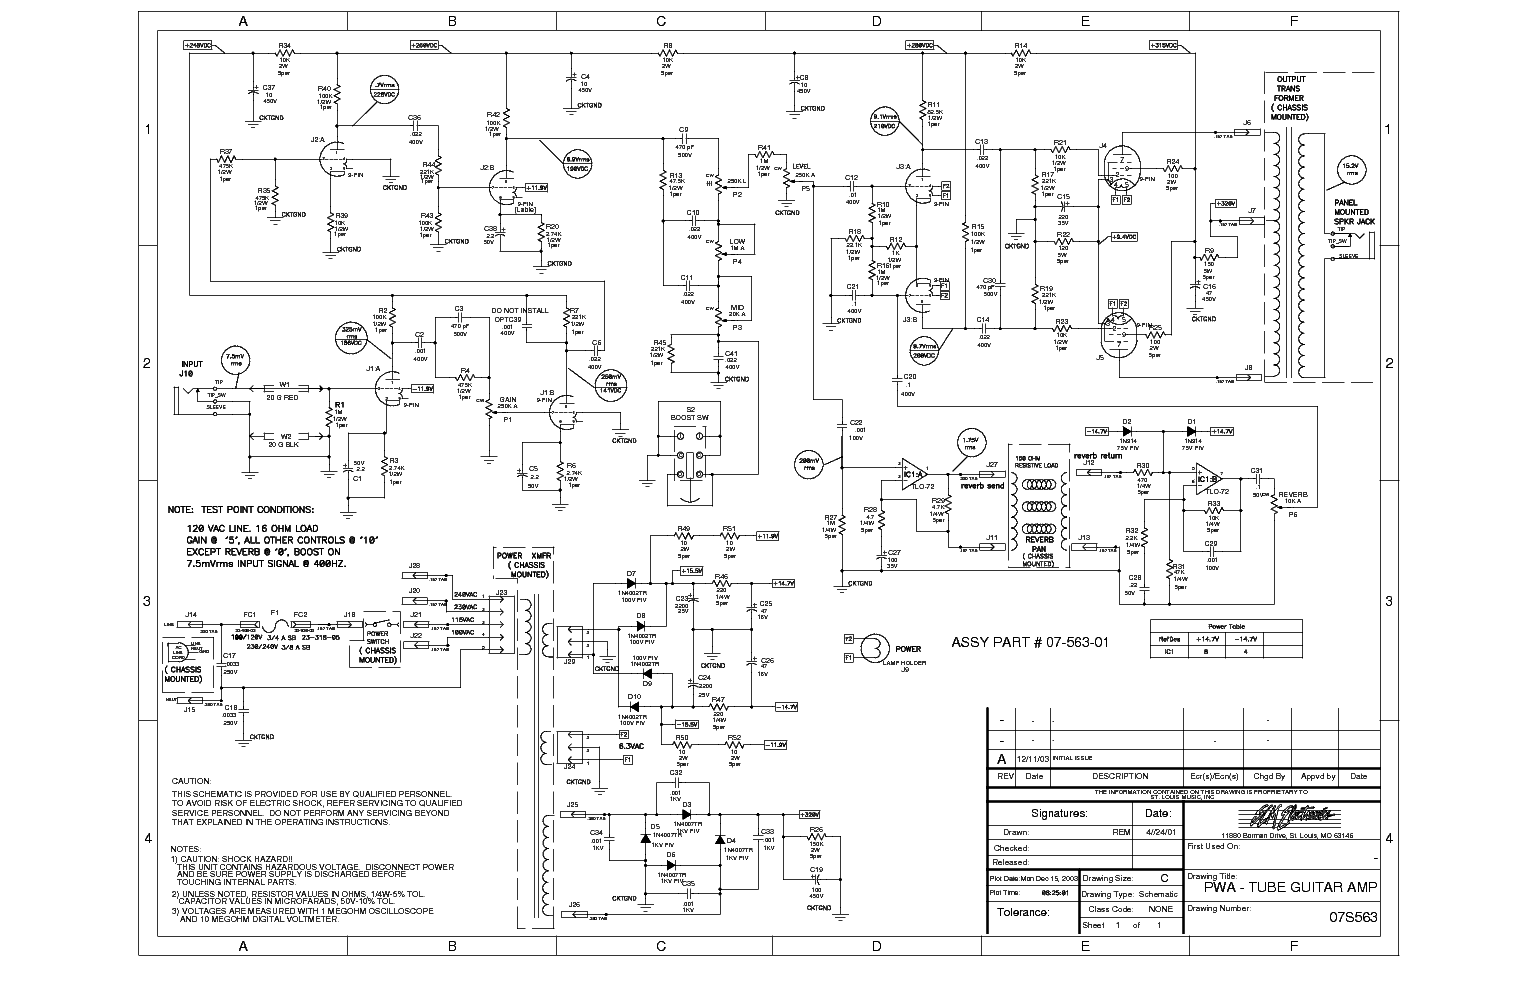 crate footswitch schematic crate cfs3 footswitch manual Wiring-Diagram Fender Esquire Vintage Single Humbucker Guitar Wiring Diagrams